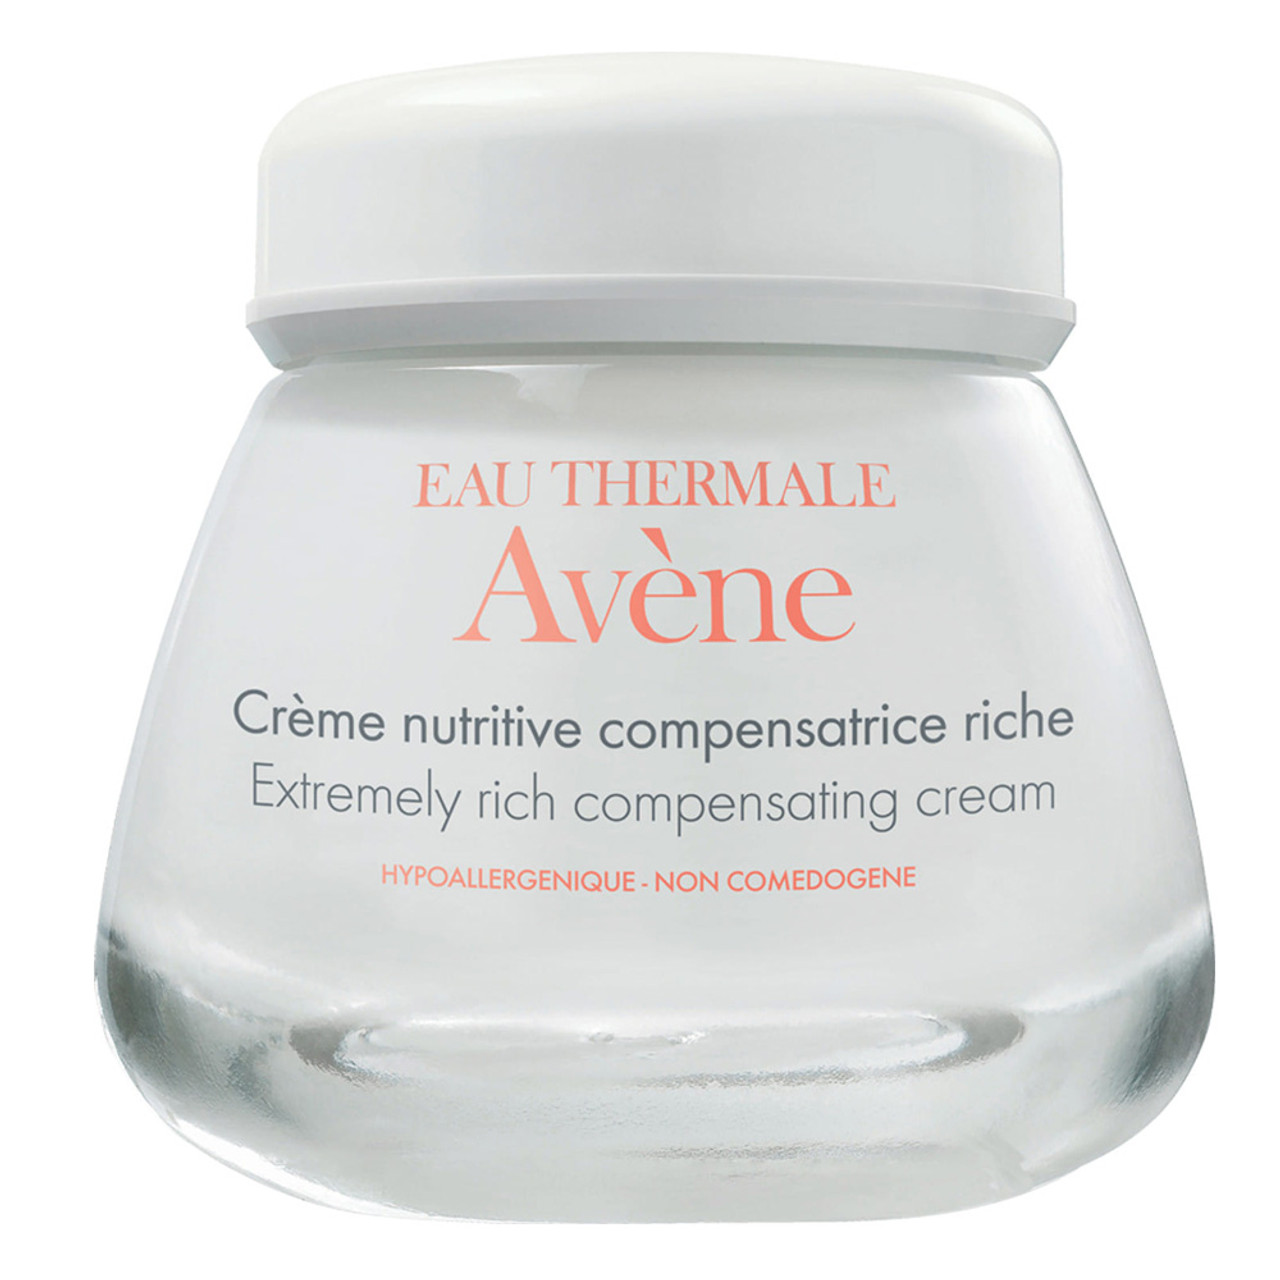 Avene Extremely Rich Compensating Cream (discontinued) BeautifiedYou.com